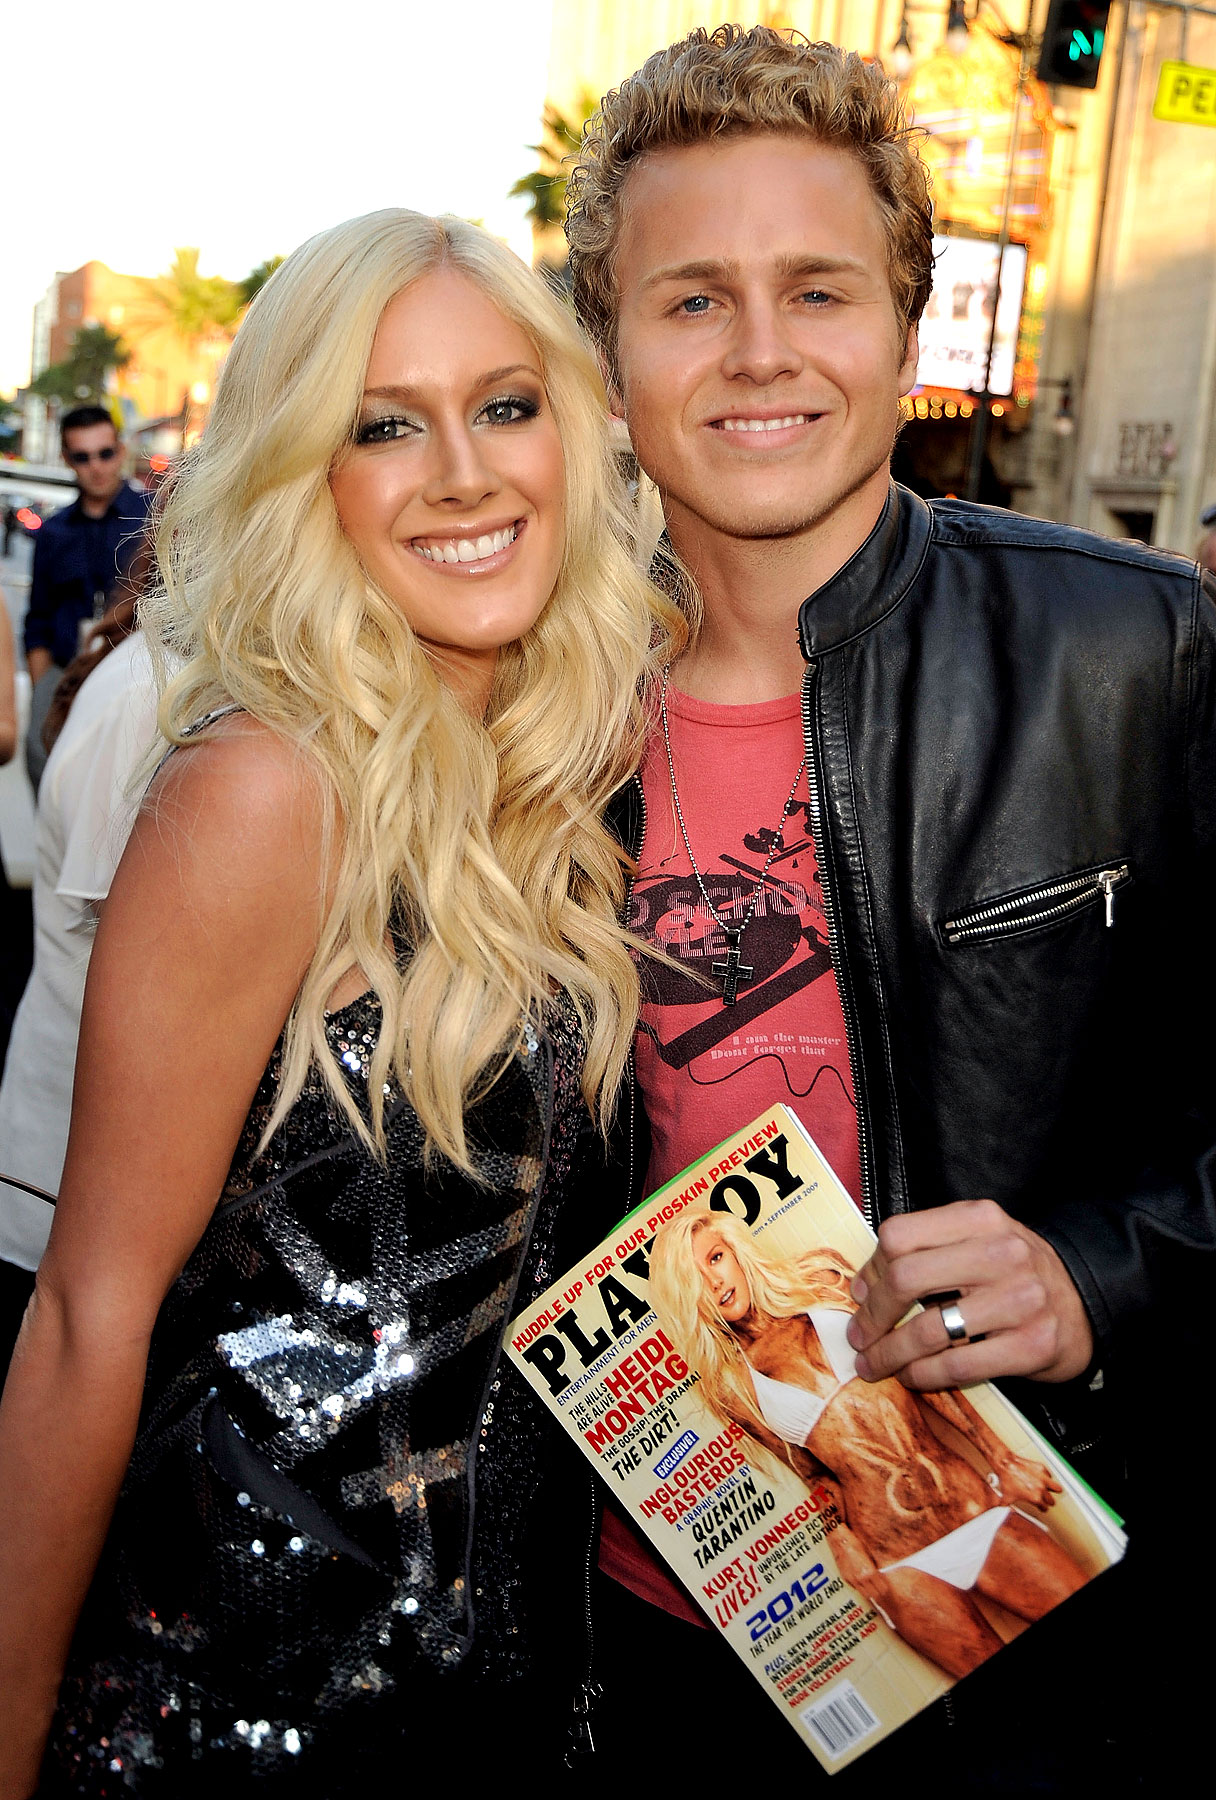 Heidi Montag and Spencer Pratt Go Into TMI Overload